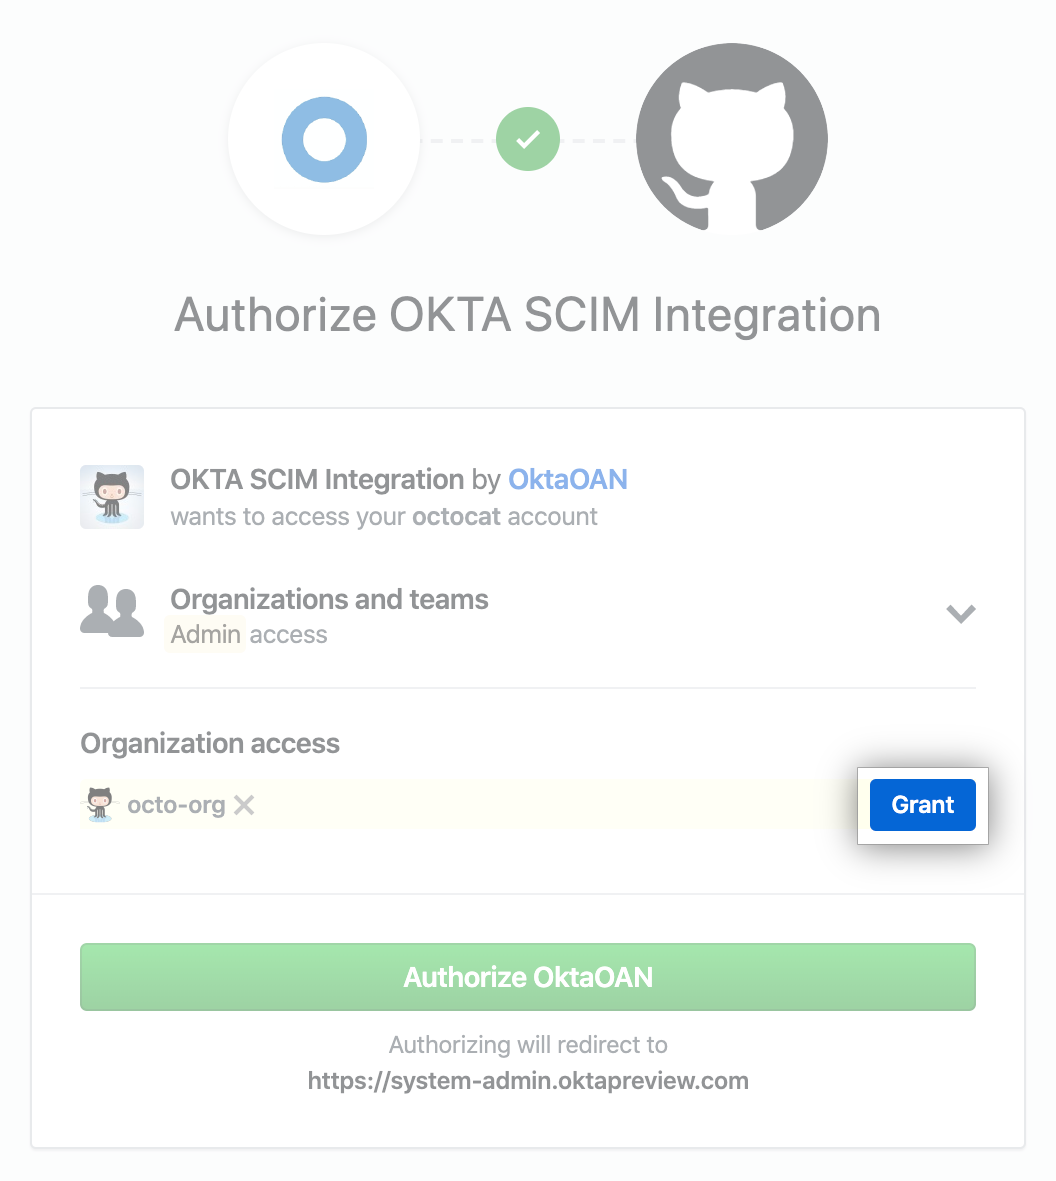 """Grant"" button for authorizing Okta SCIM integration to access organization"